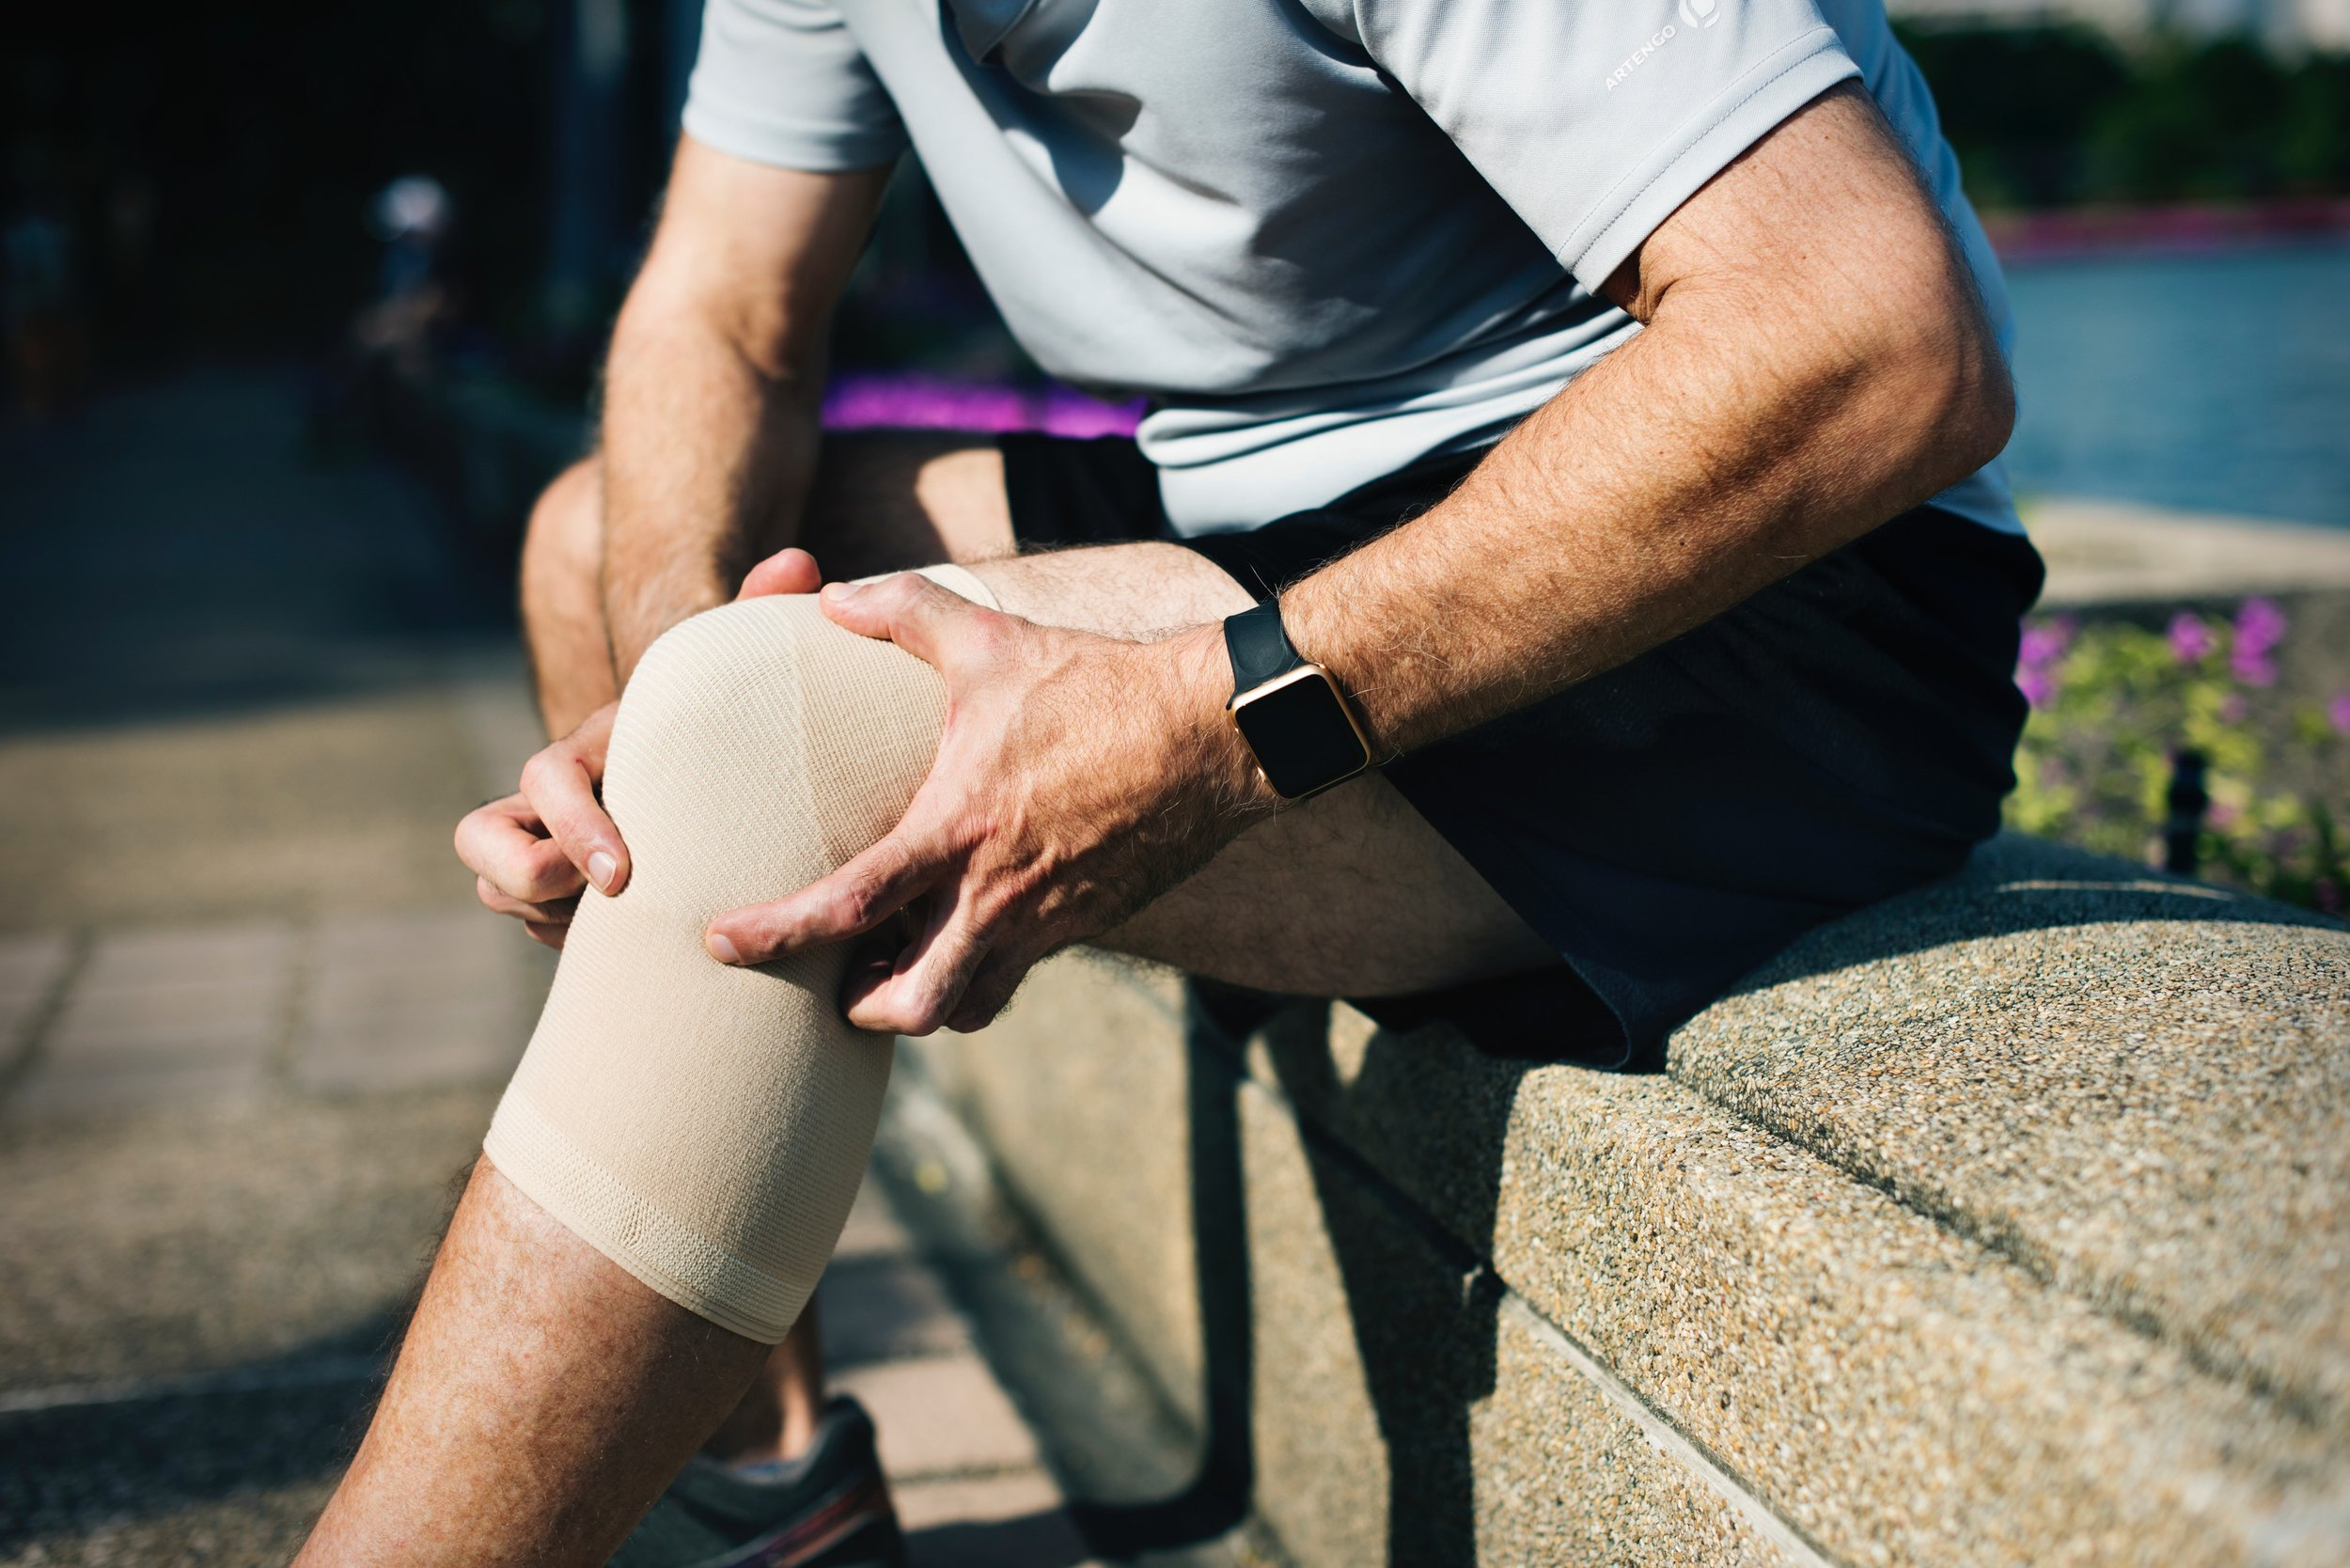 Hurt Runner injury pain